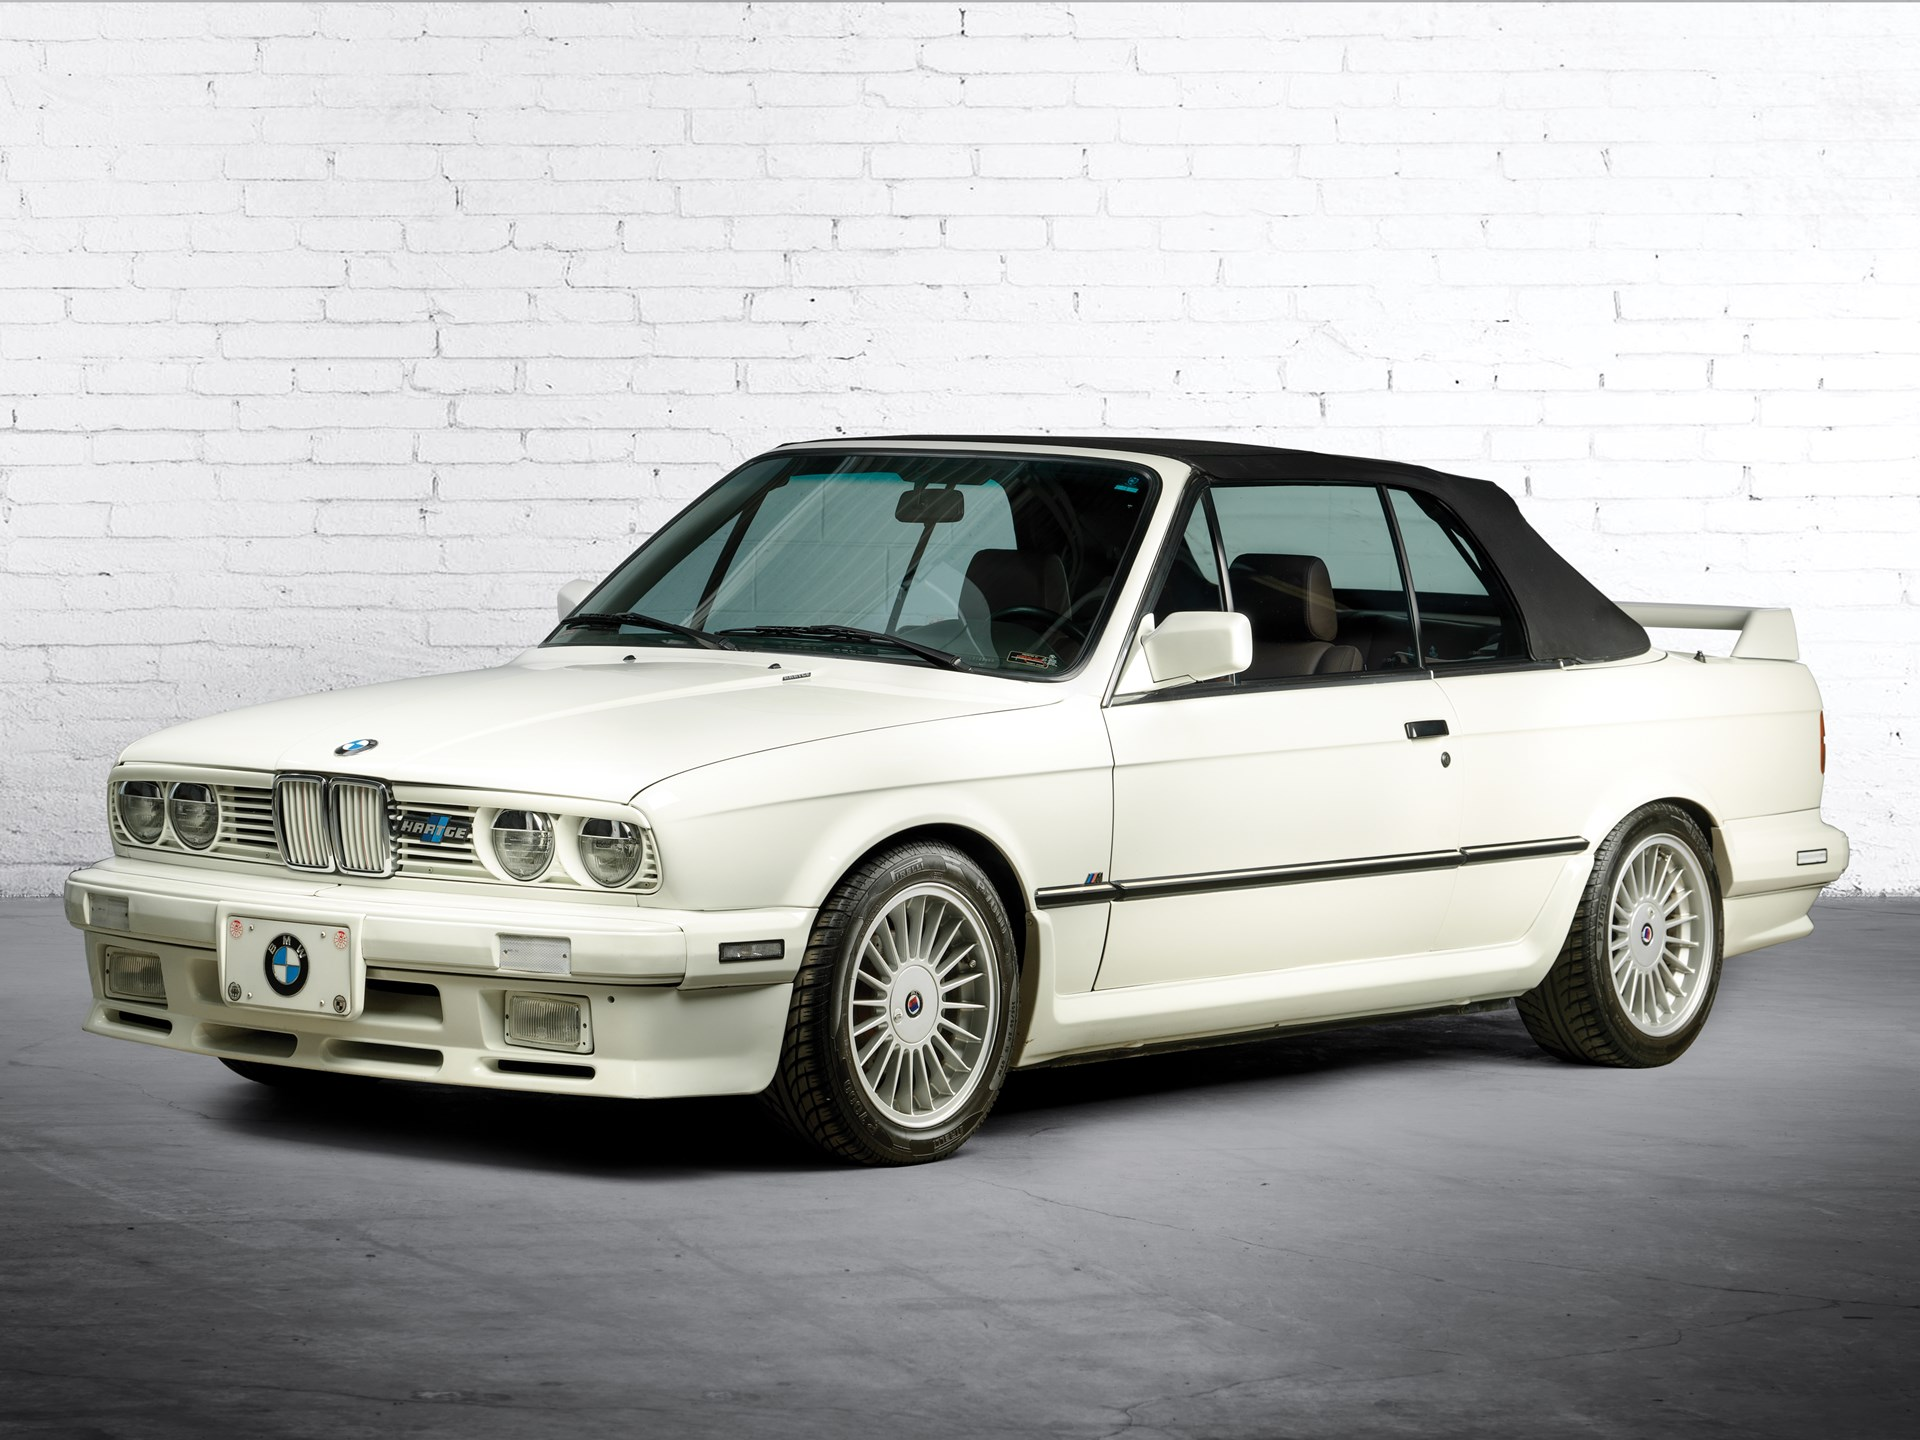 RM Sotheby s 1990 BMW Hartge H26 Cabriolet